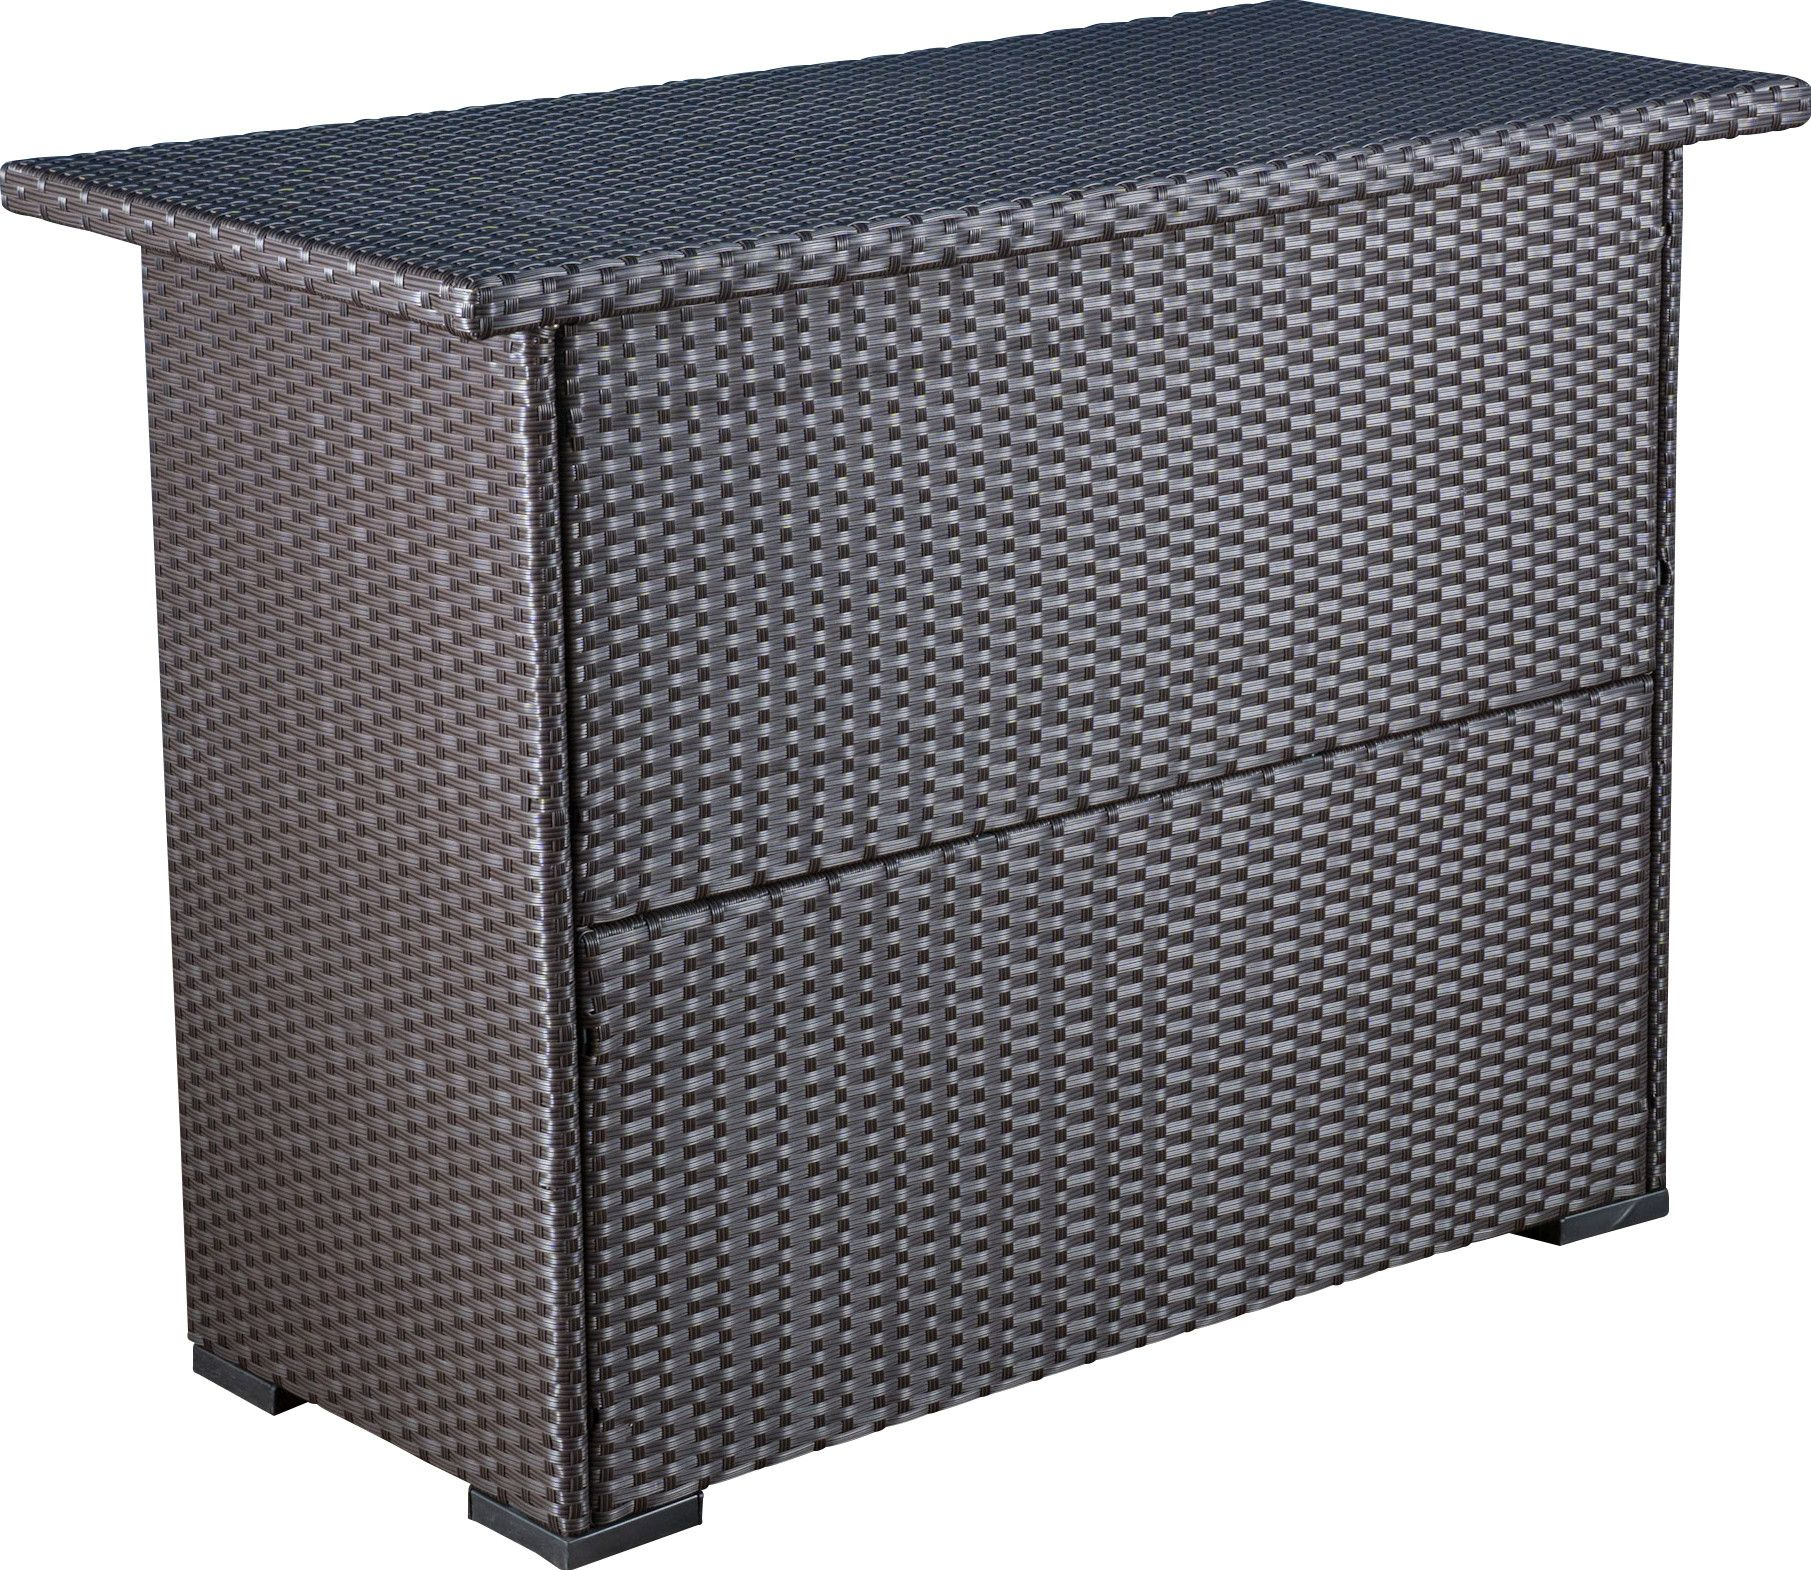 Mcdaniel outdoor wicker bar products pinterest products